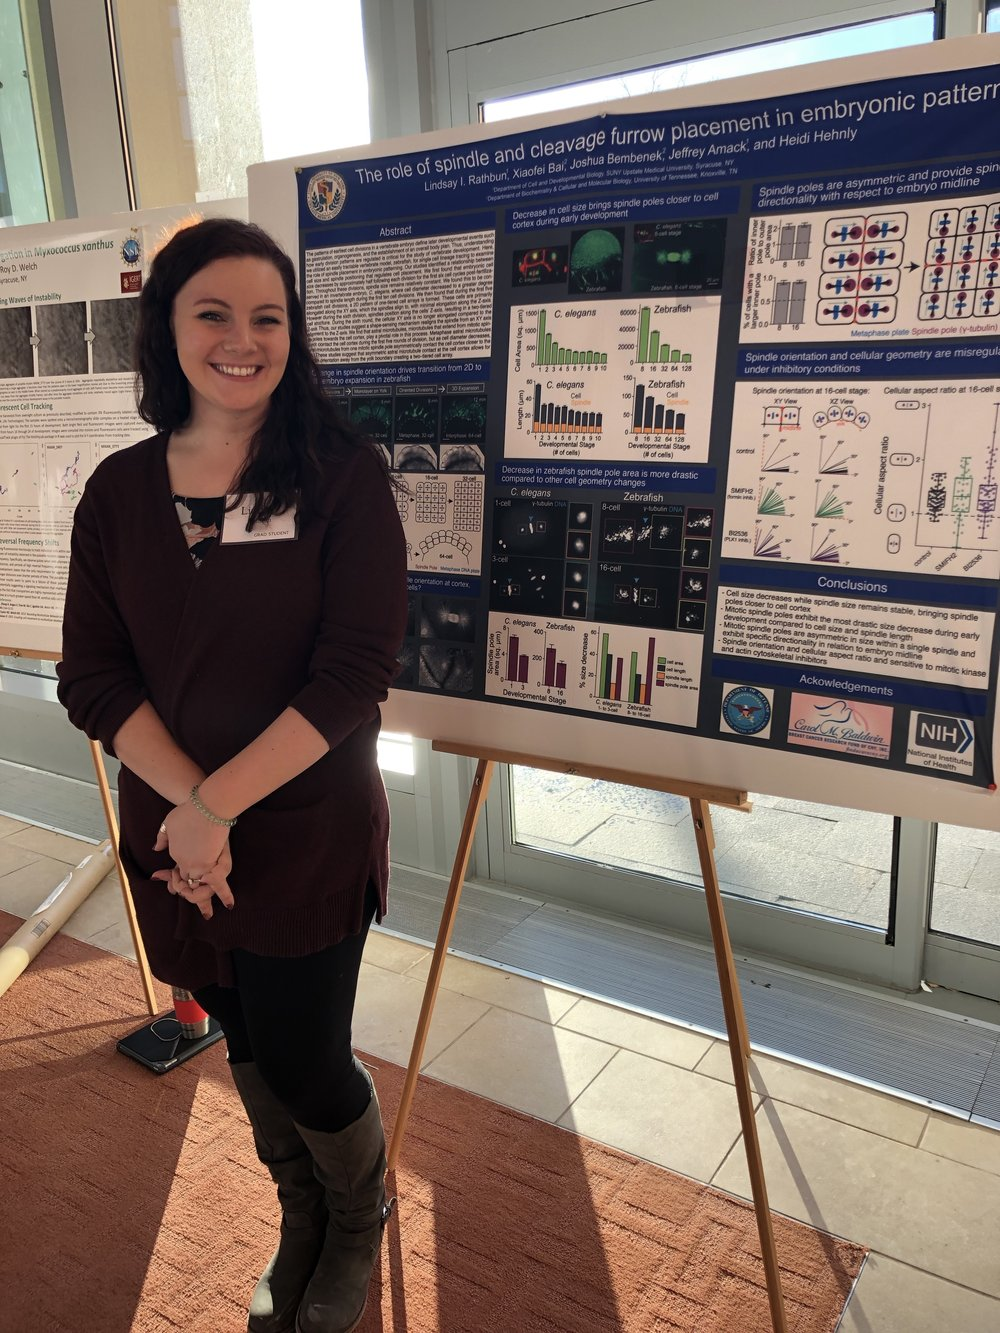 Lindsay at her poster in the SU life sciences complex atrium.